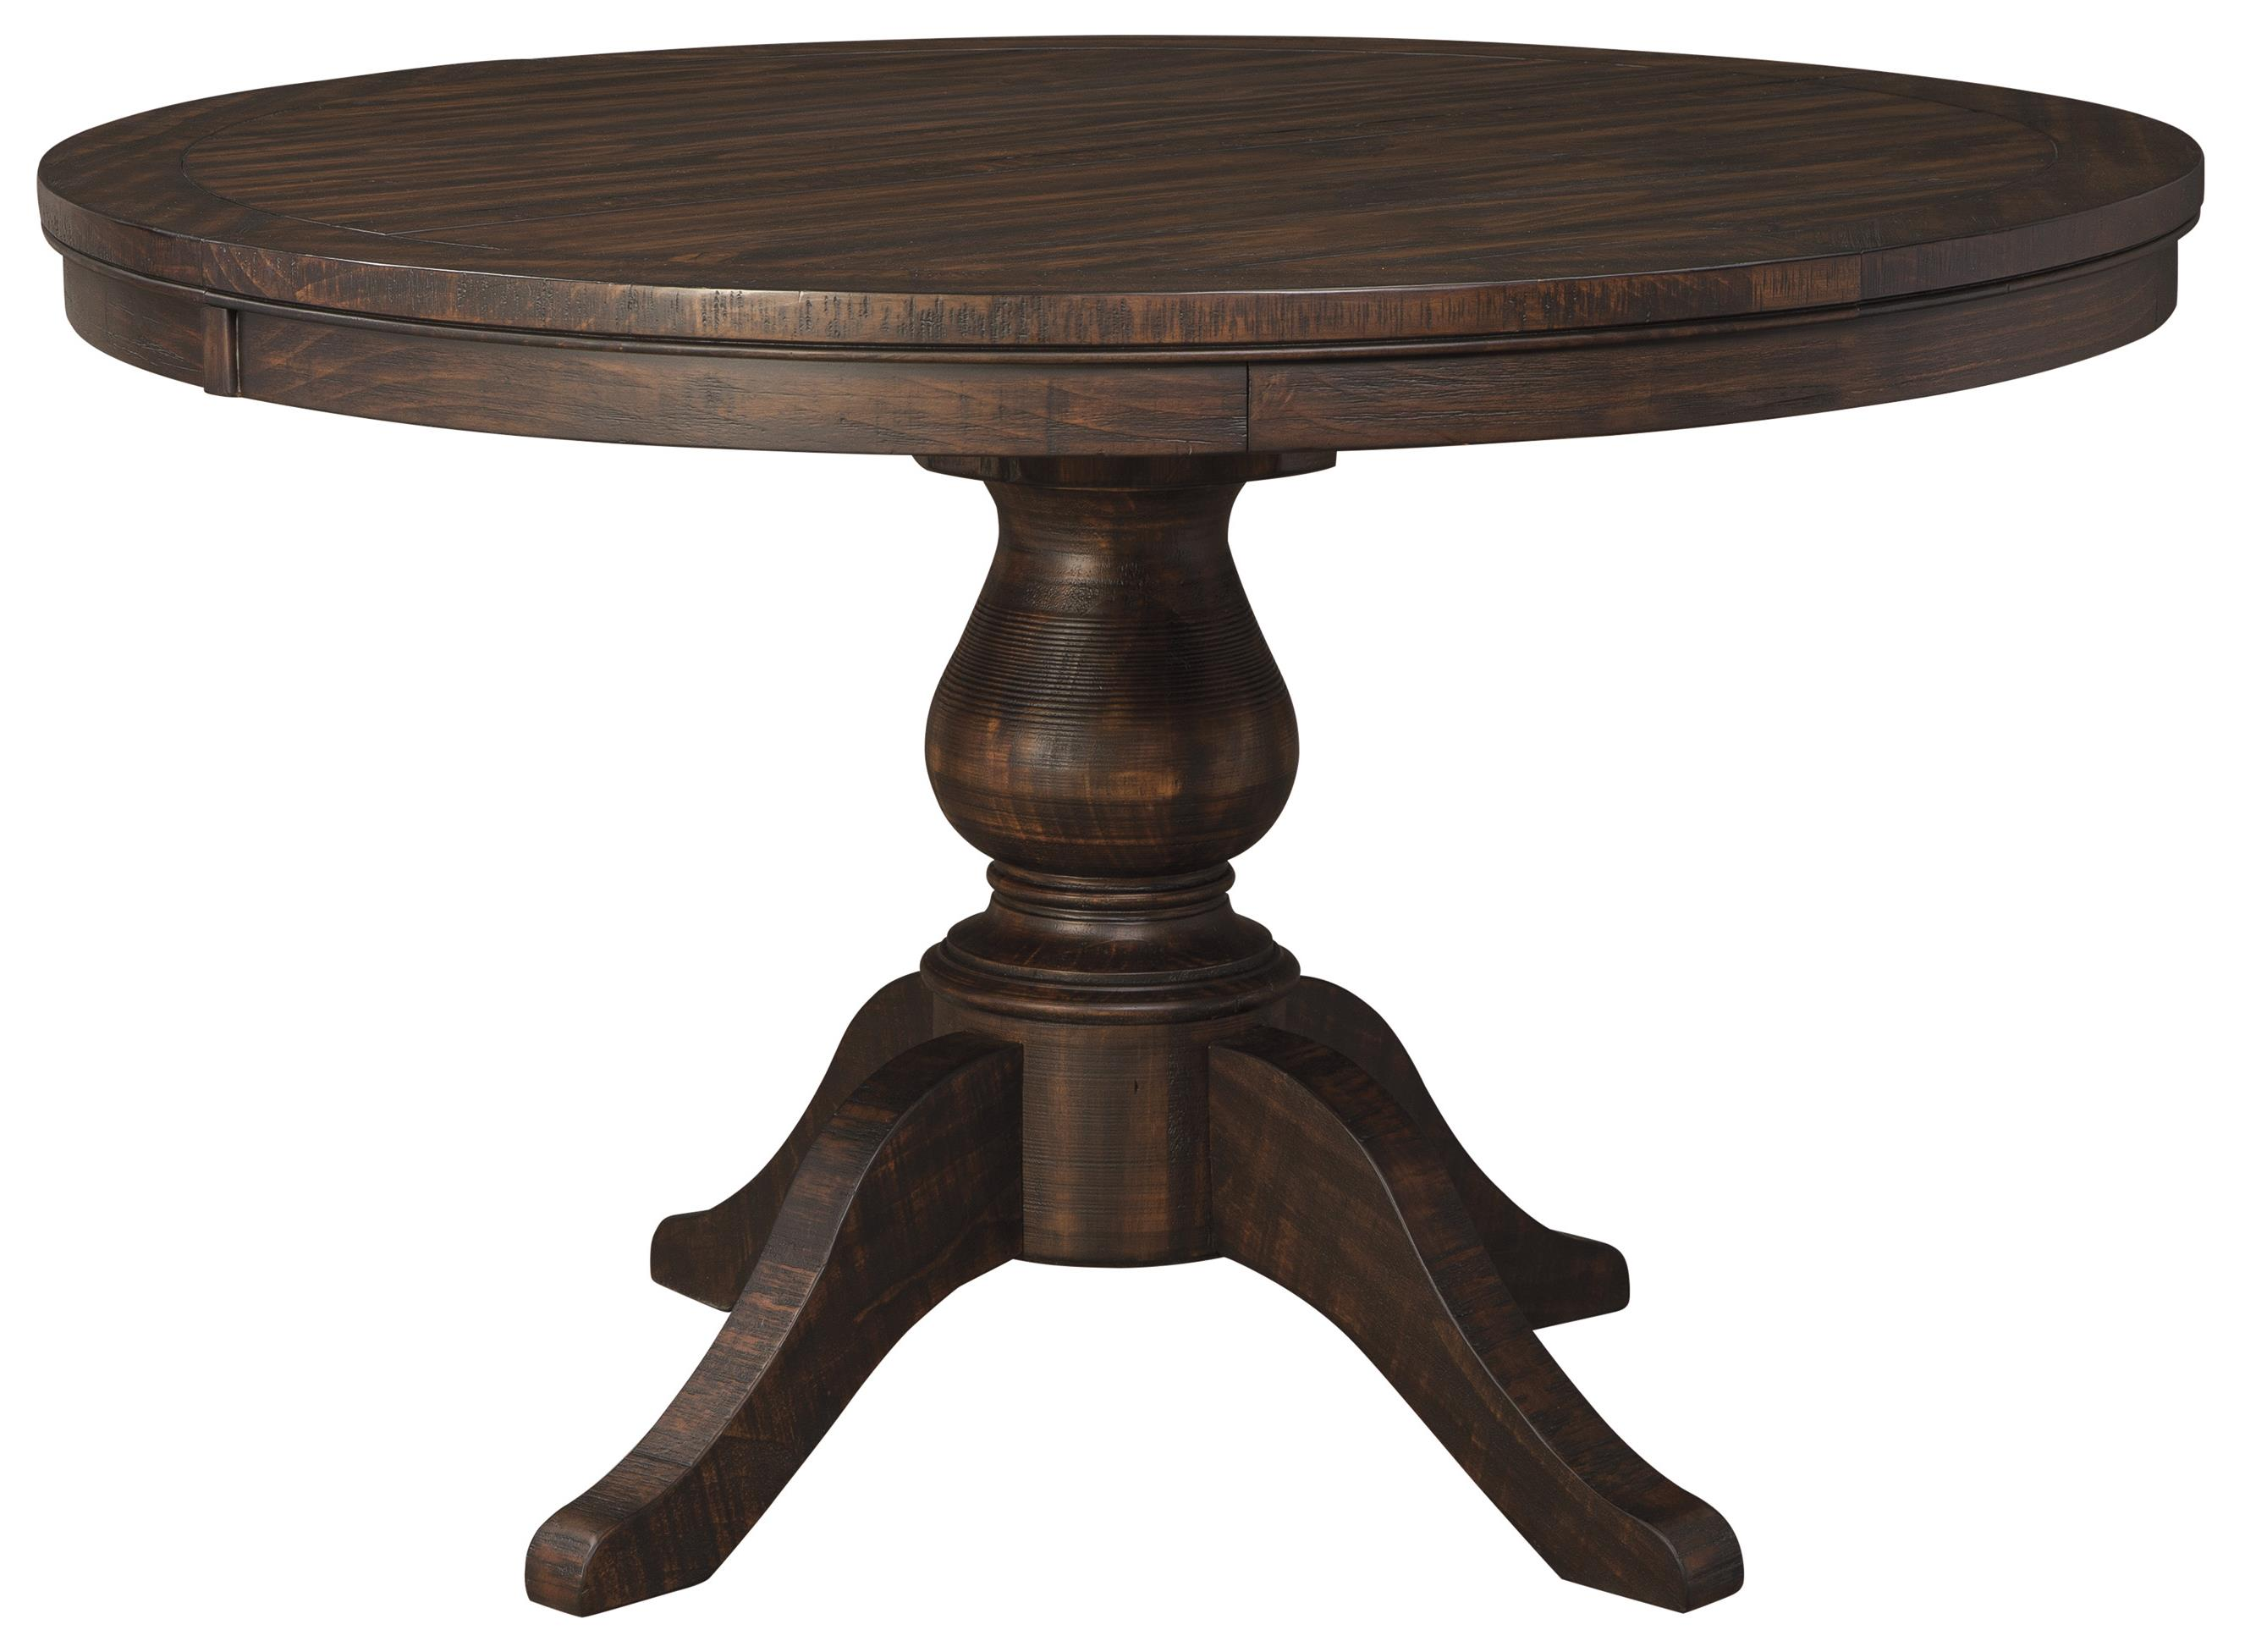 Solid wood pine round dining room pedestal extension table for Solid wood round tables dining